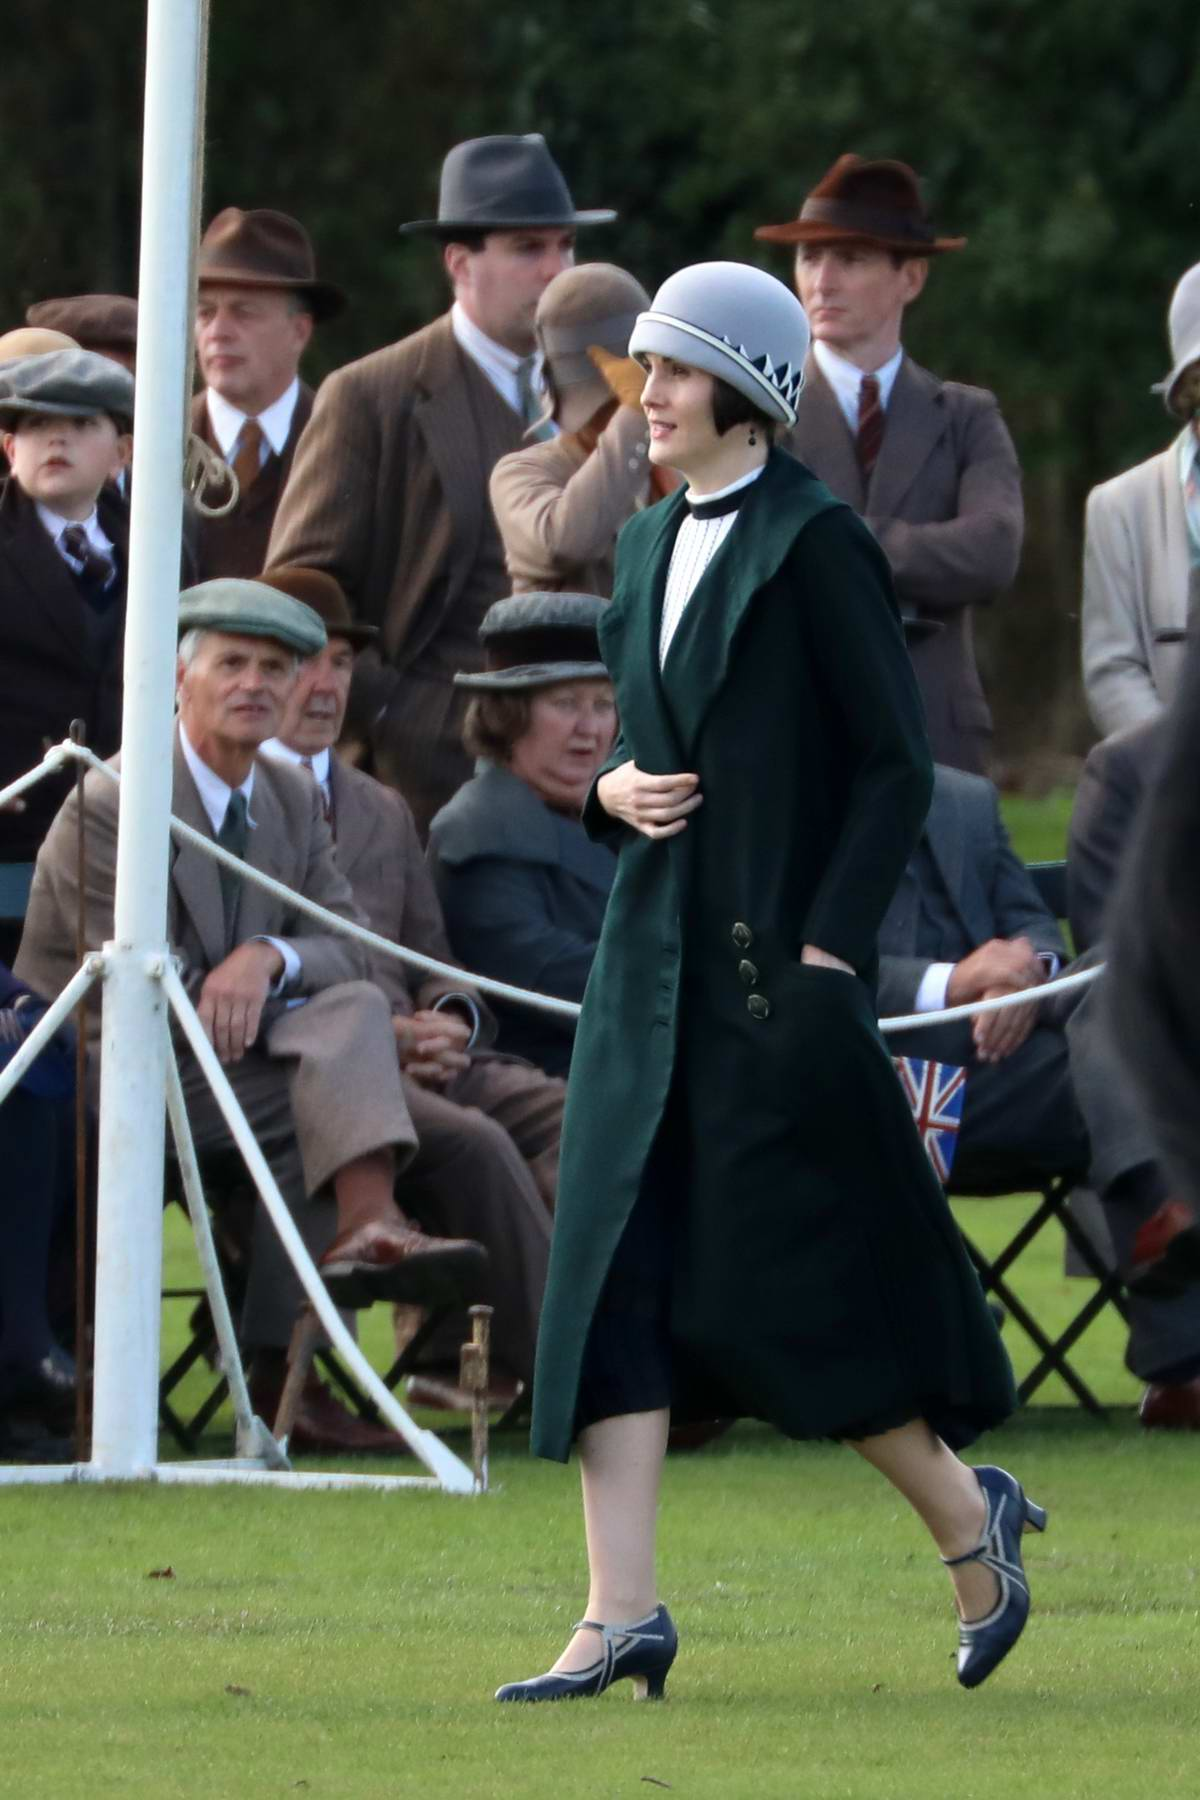 Michelle Dockery spotted on set of the 'Downton Abbey' movie in Bath, UK